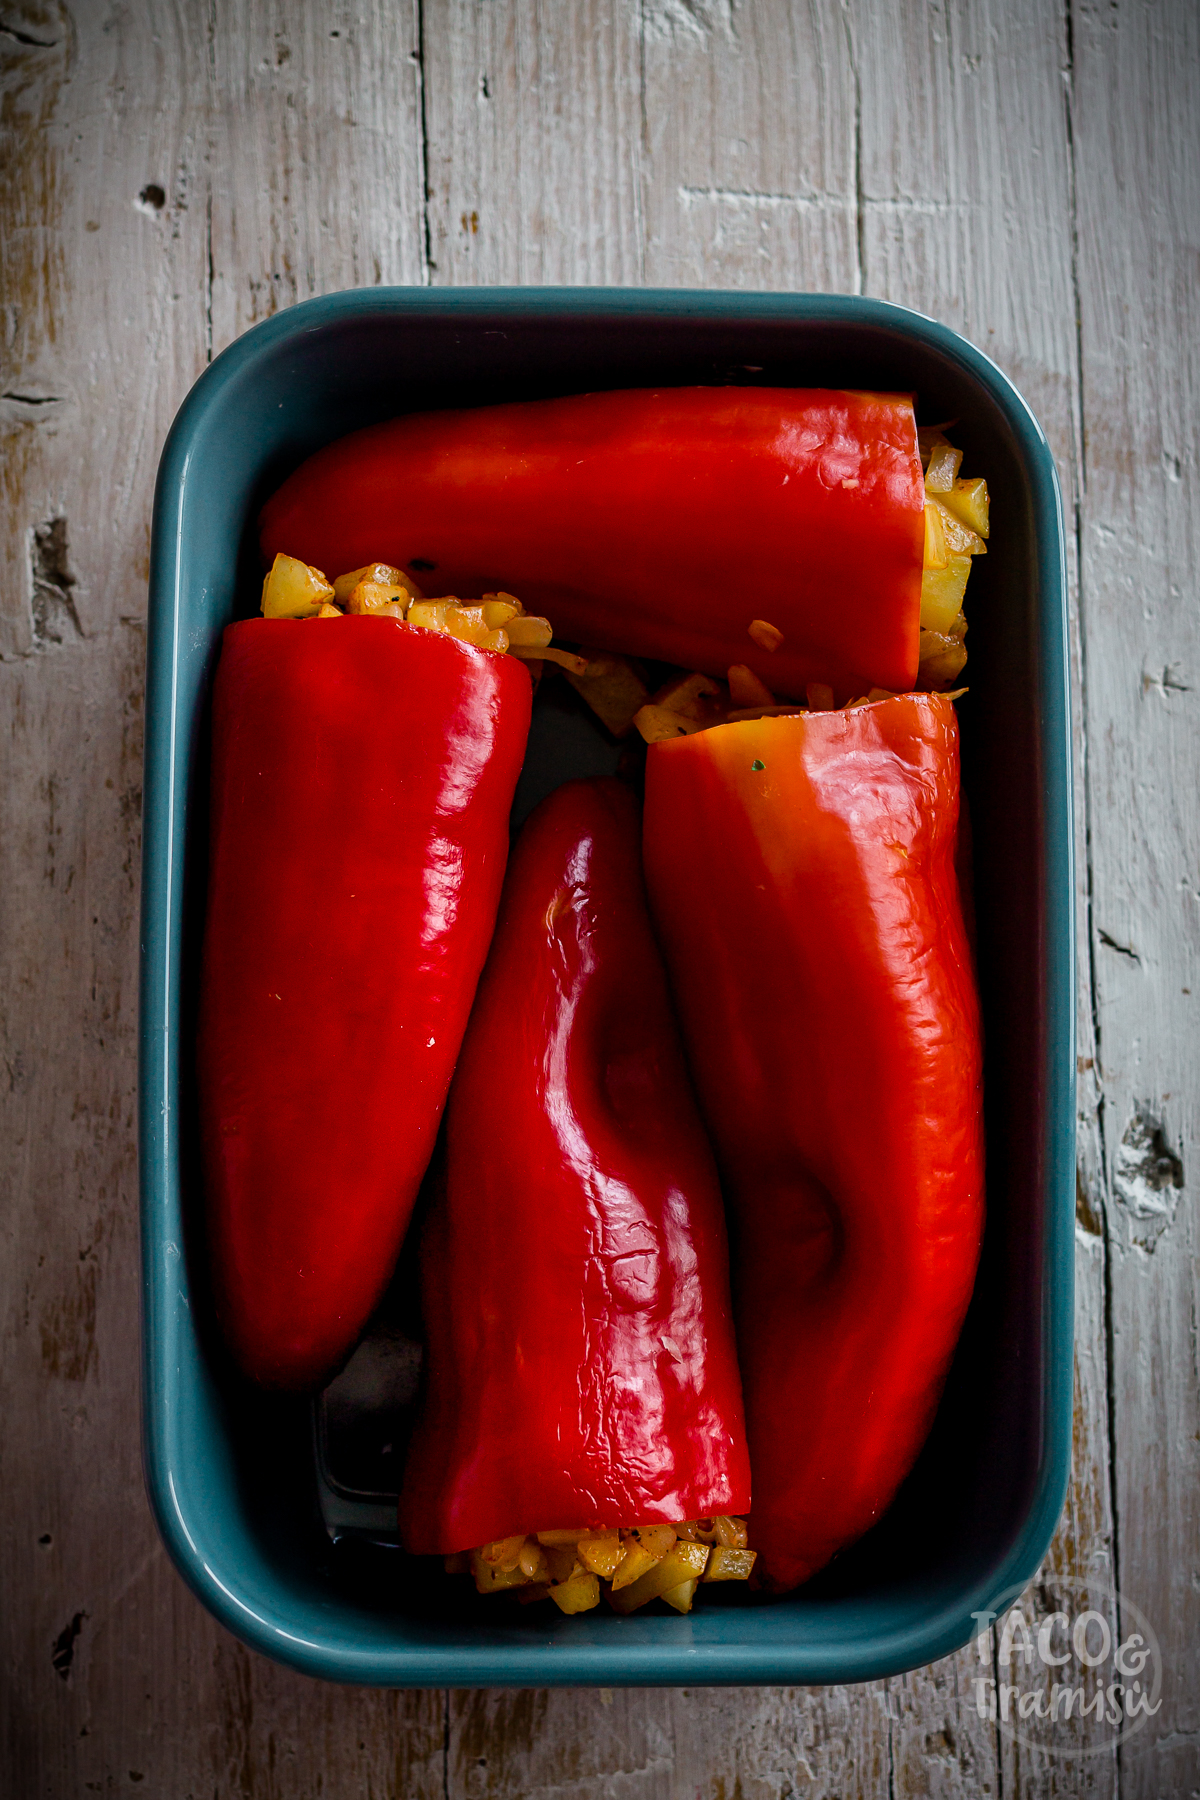 stuffed peppers in a pan for baking